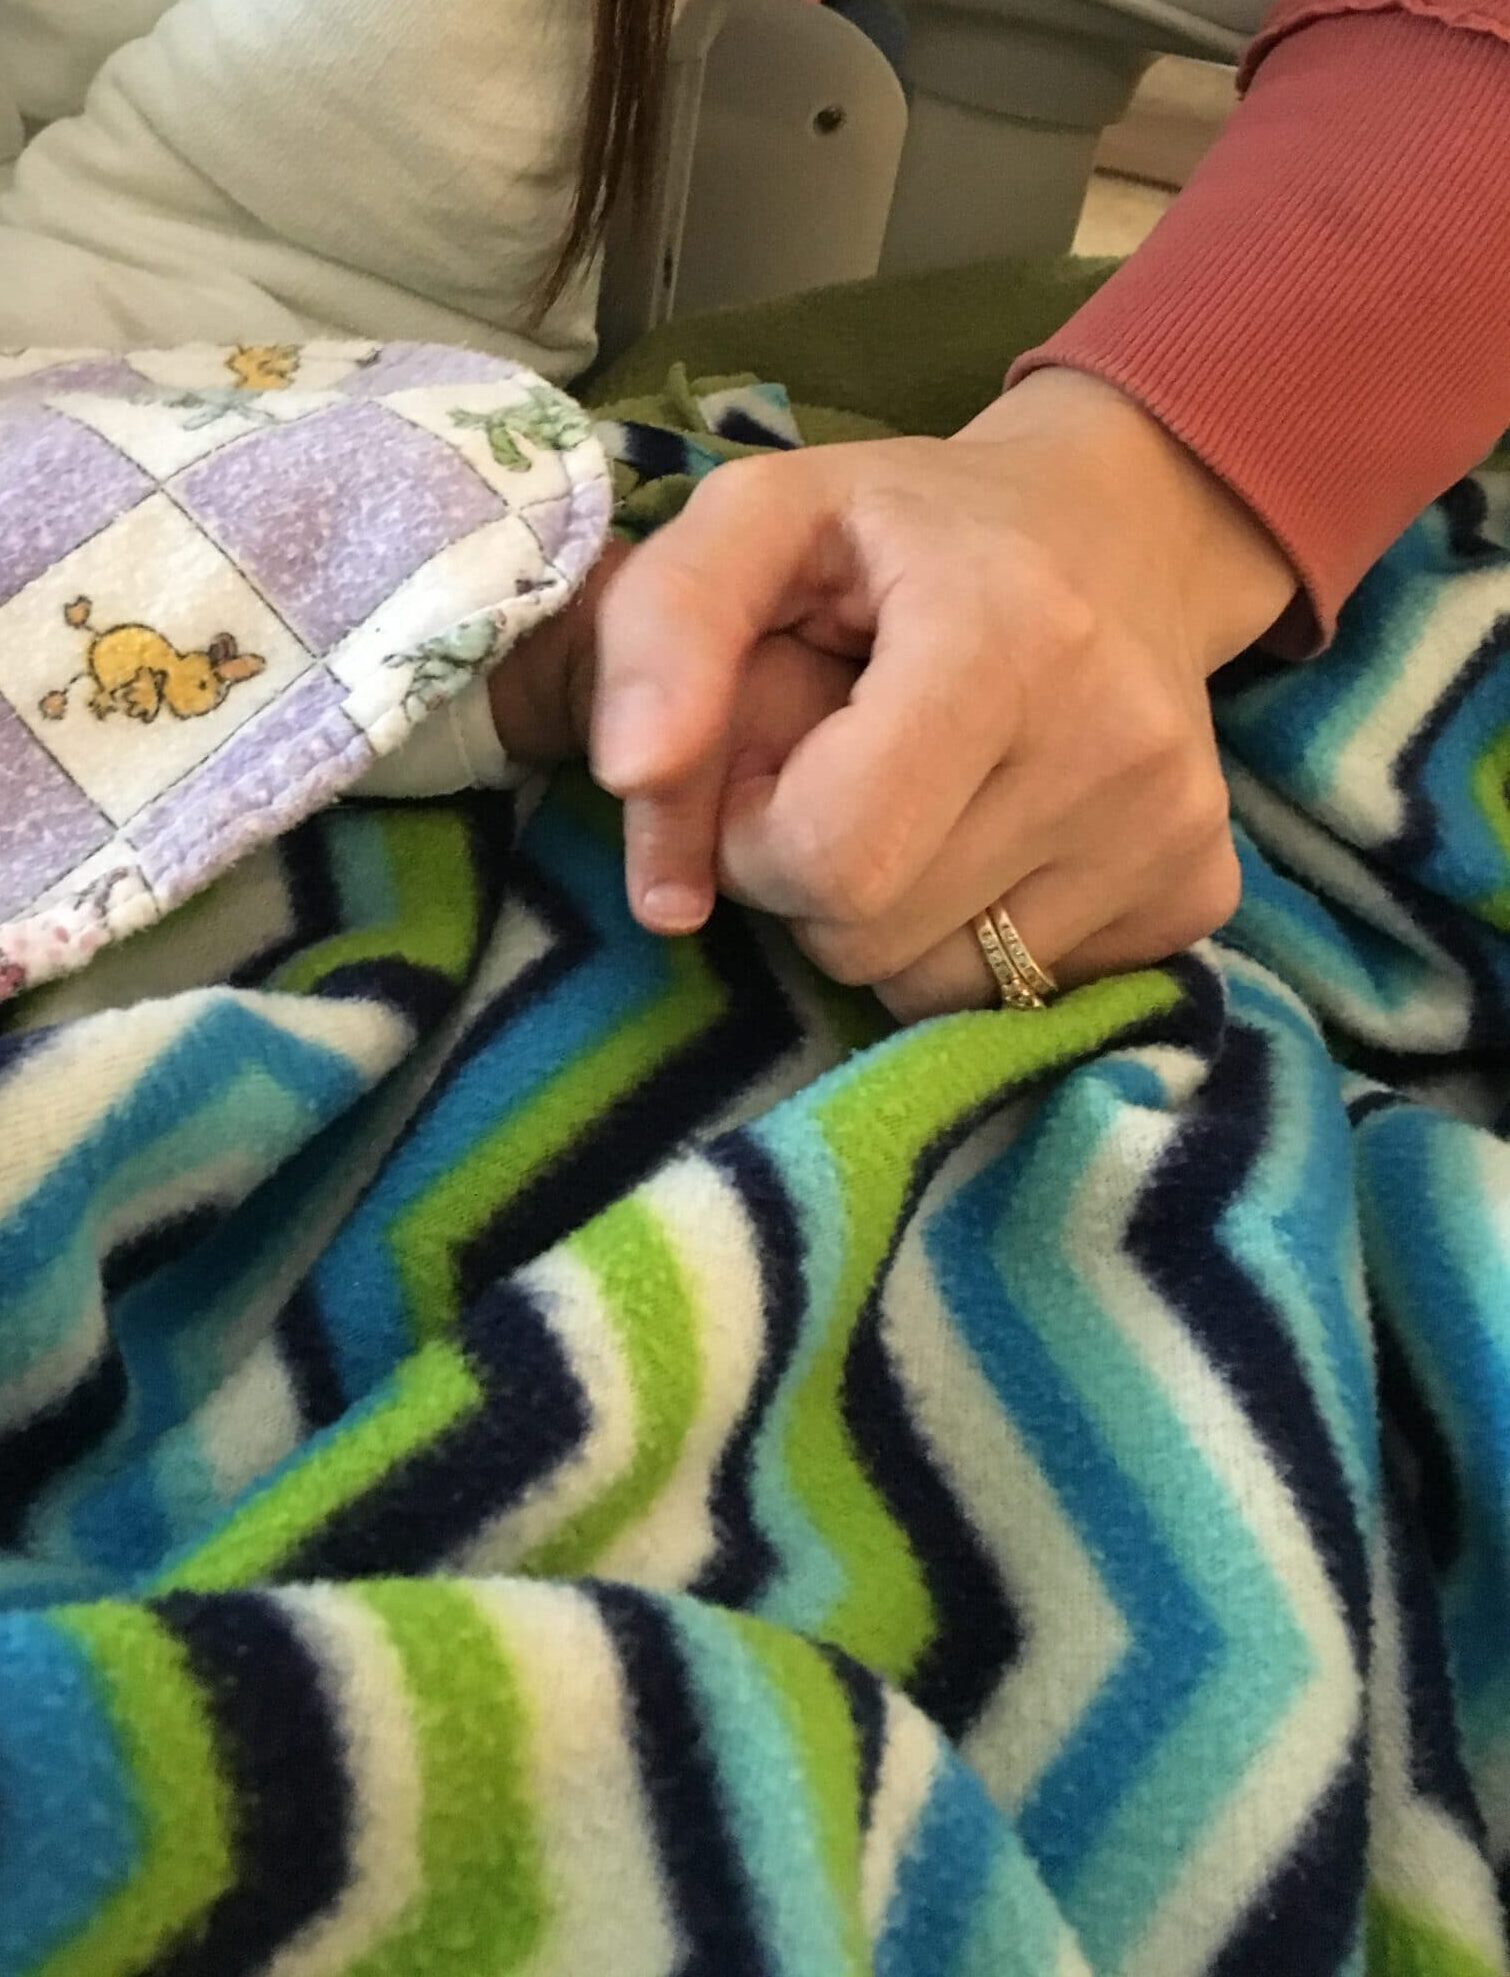 Holding my baby's hand during recovery